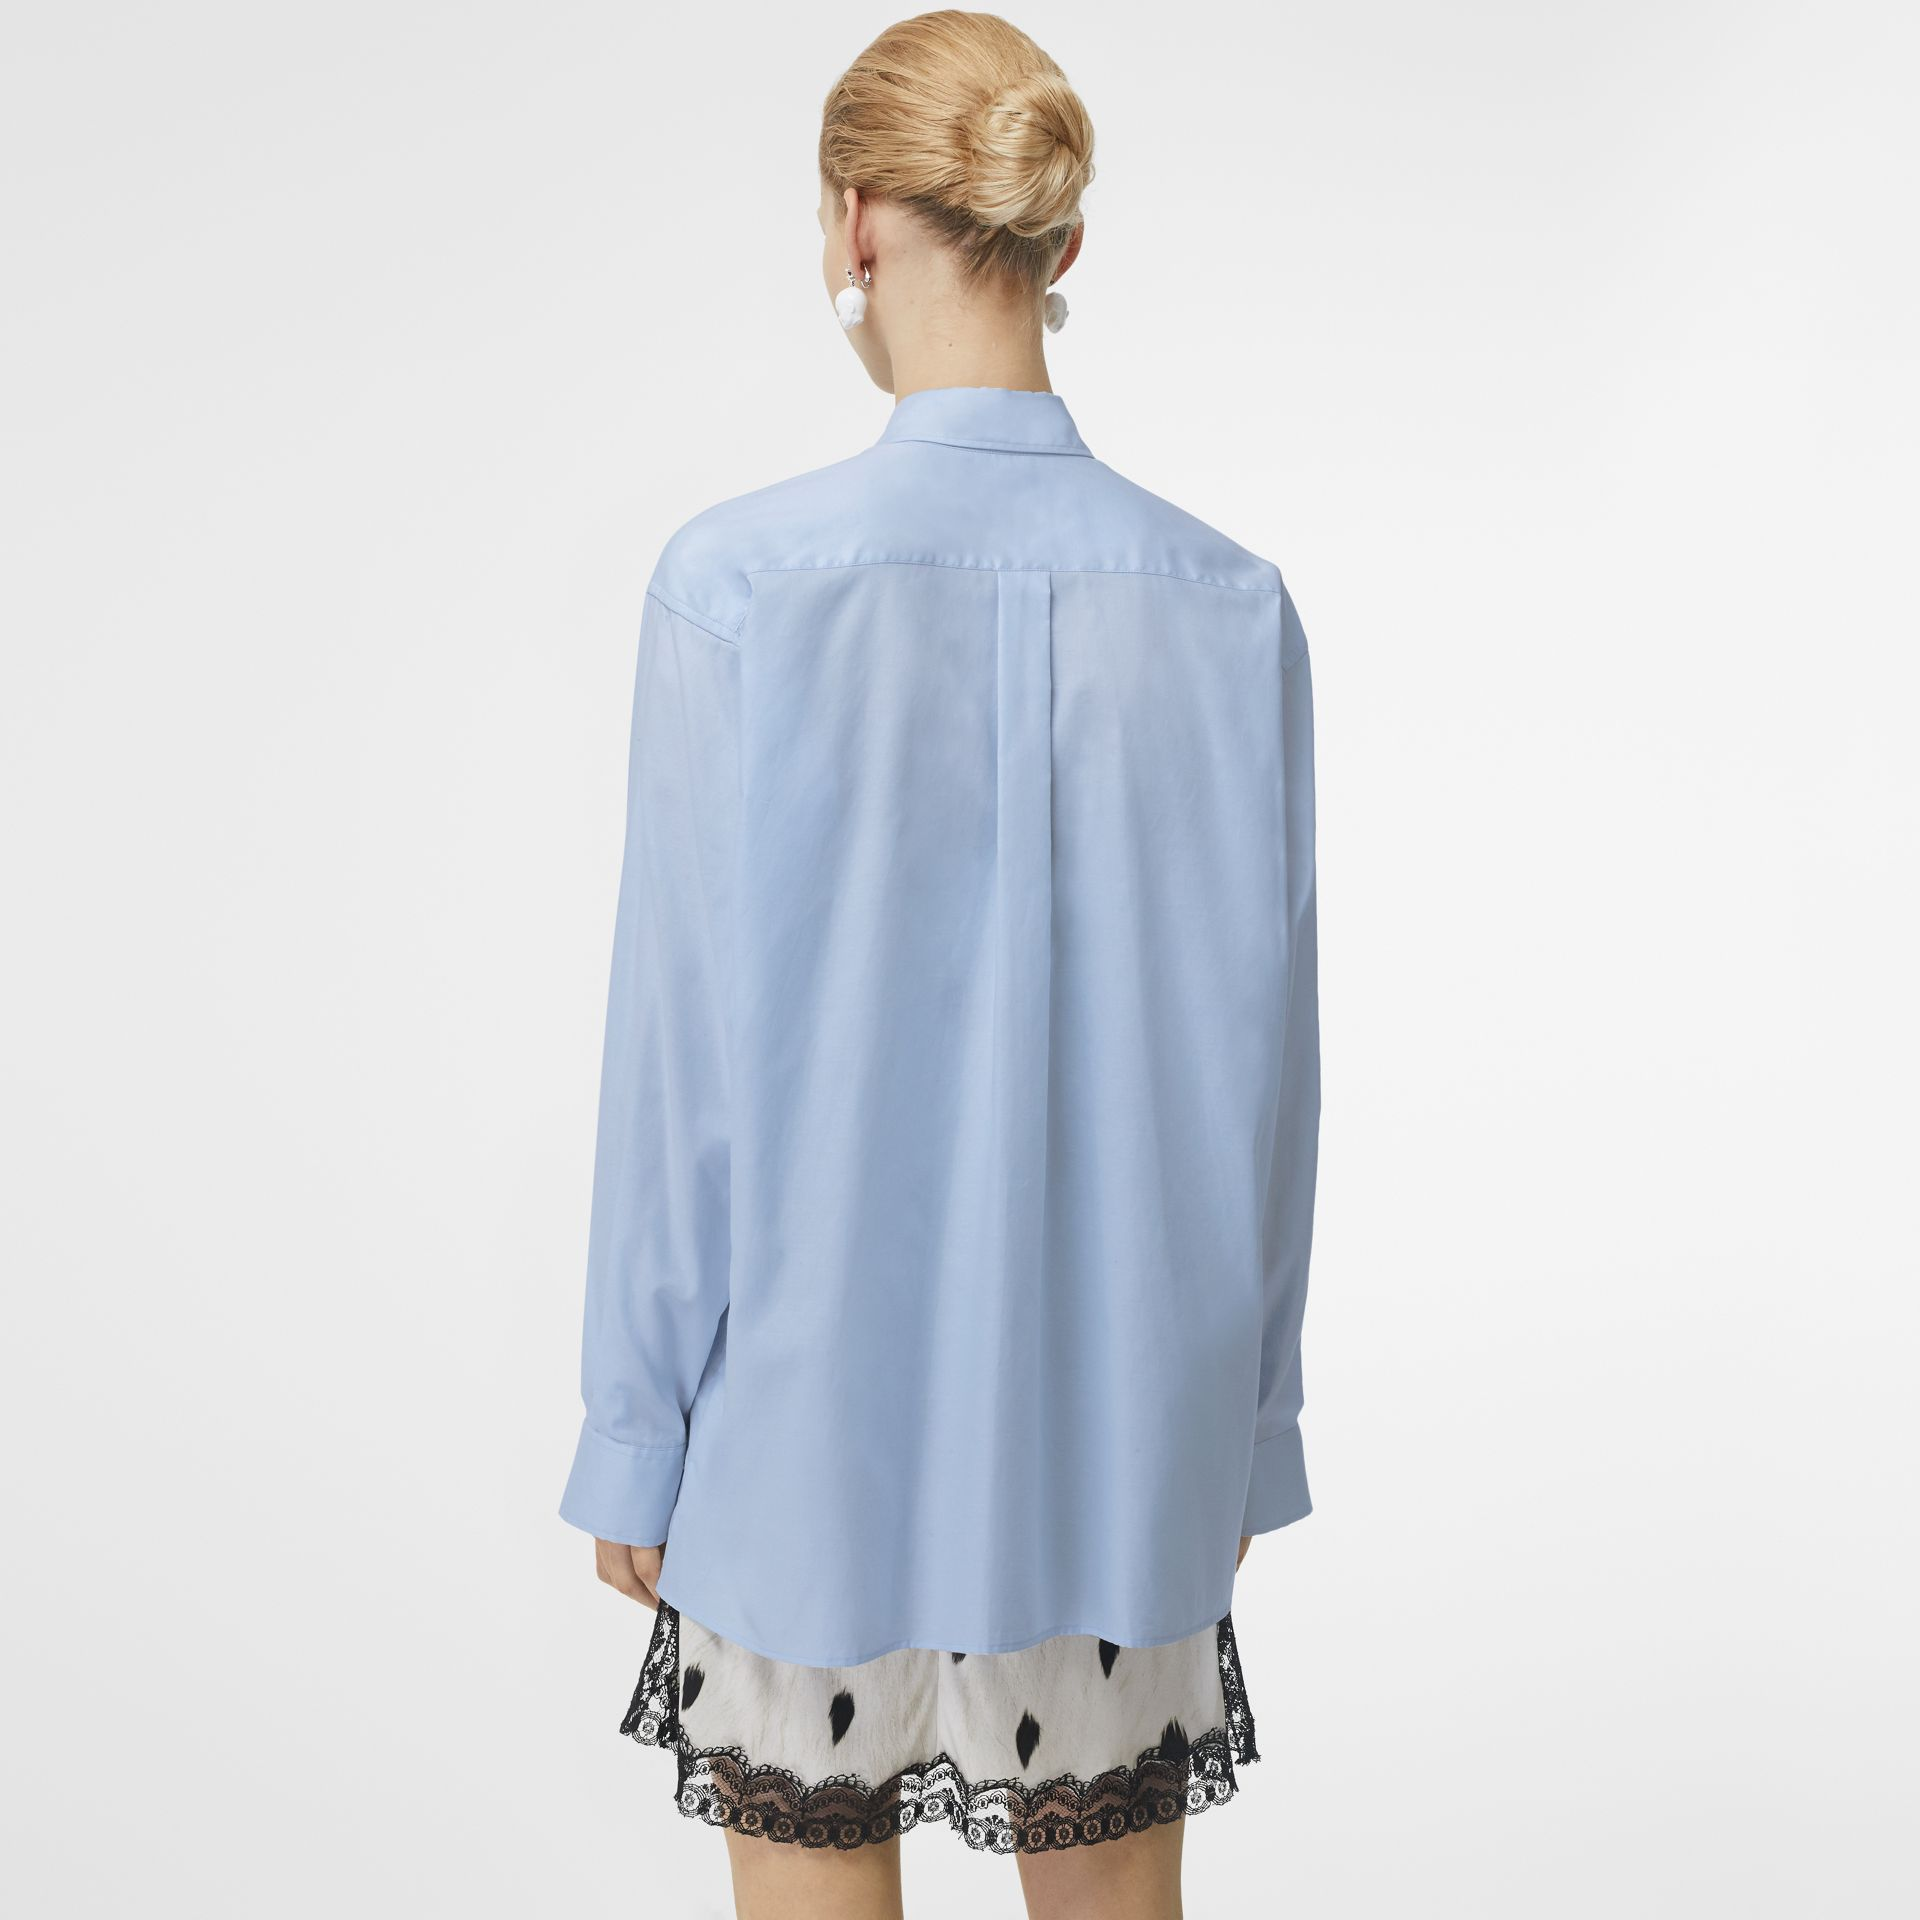 Press-stud Collar Montage Print Oversized Shirt in Pale Blue - Women | Burberry Hong Kong S.A.R - gallery image 2